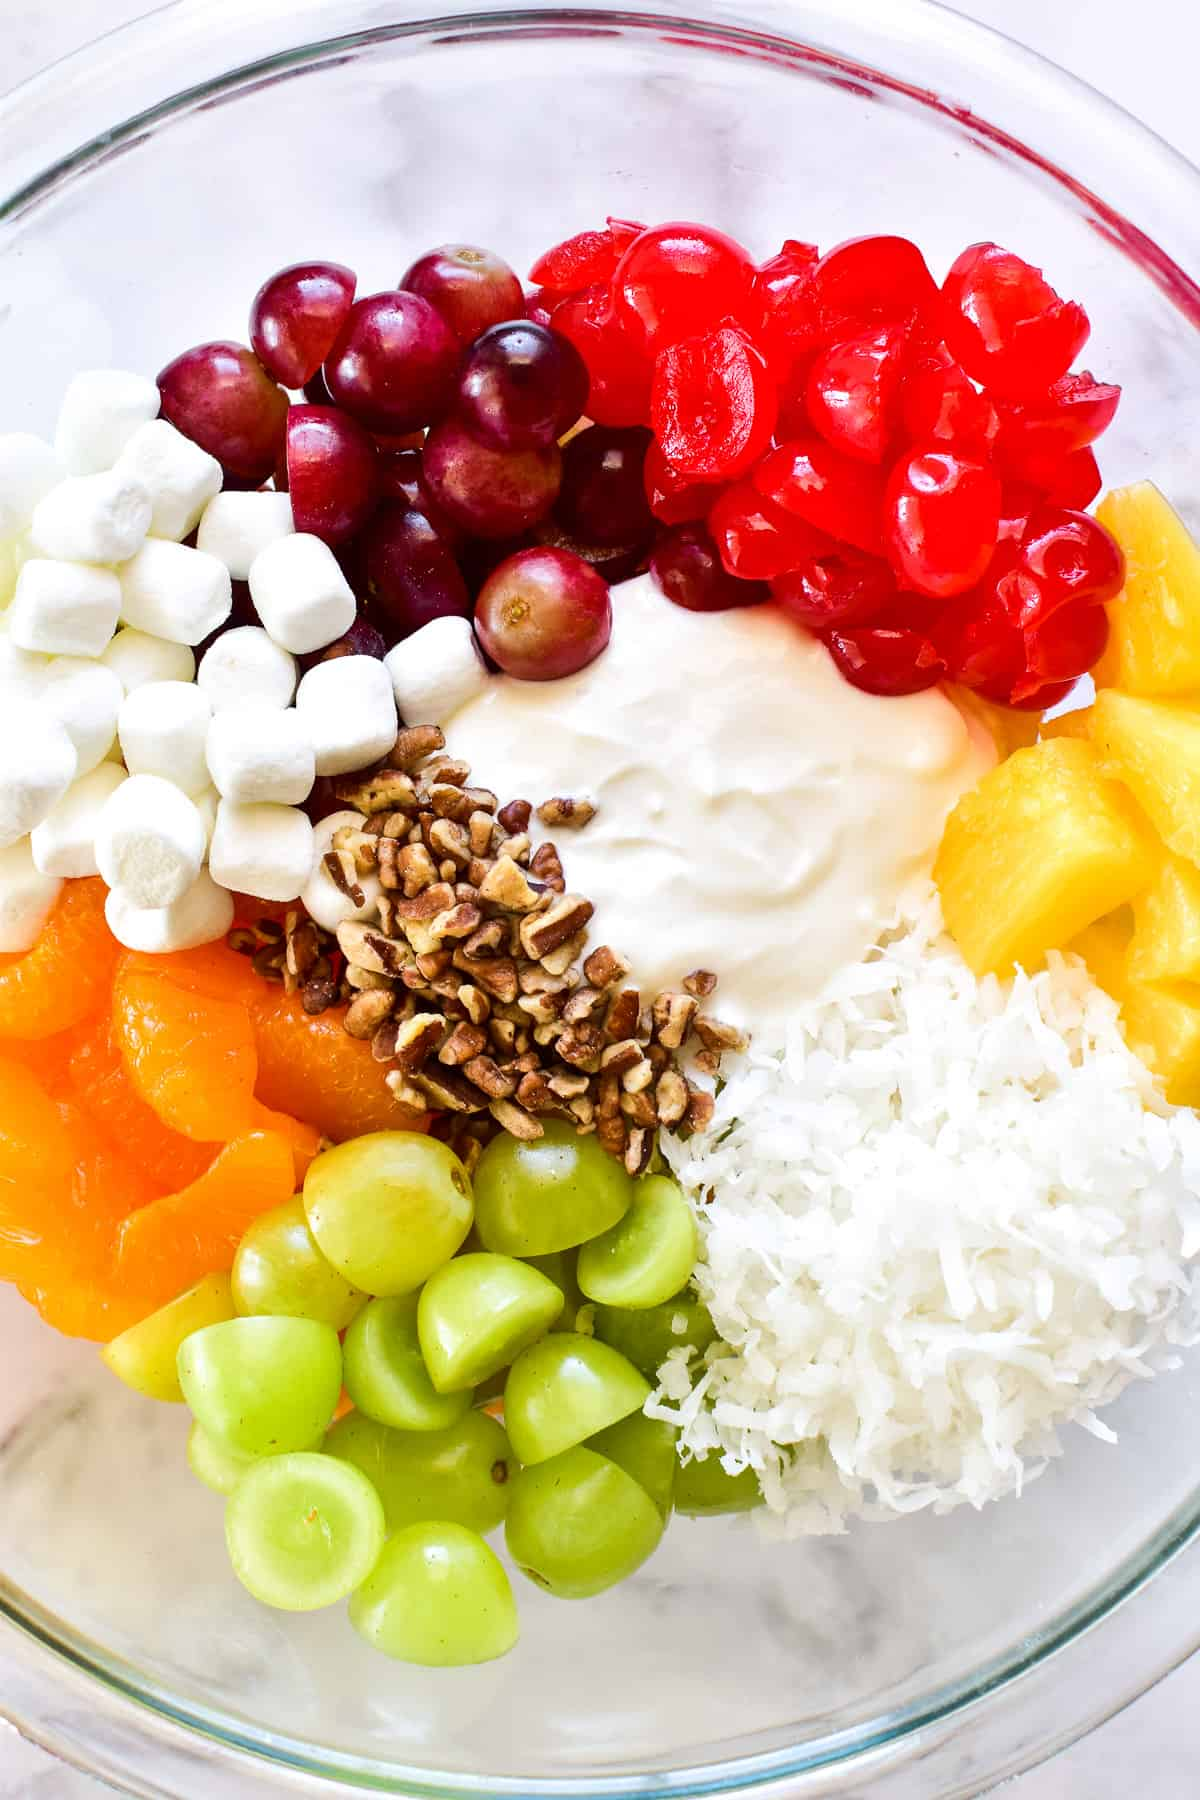 Ambrosia Salad ingredients separated in mixing bowl